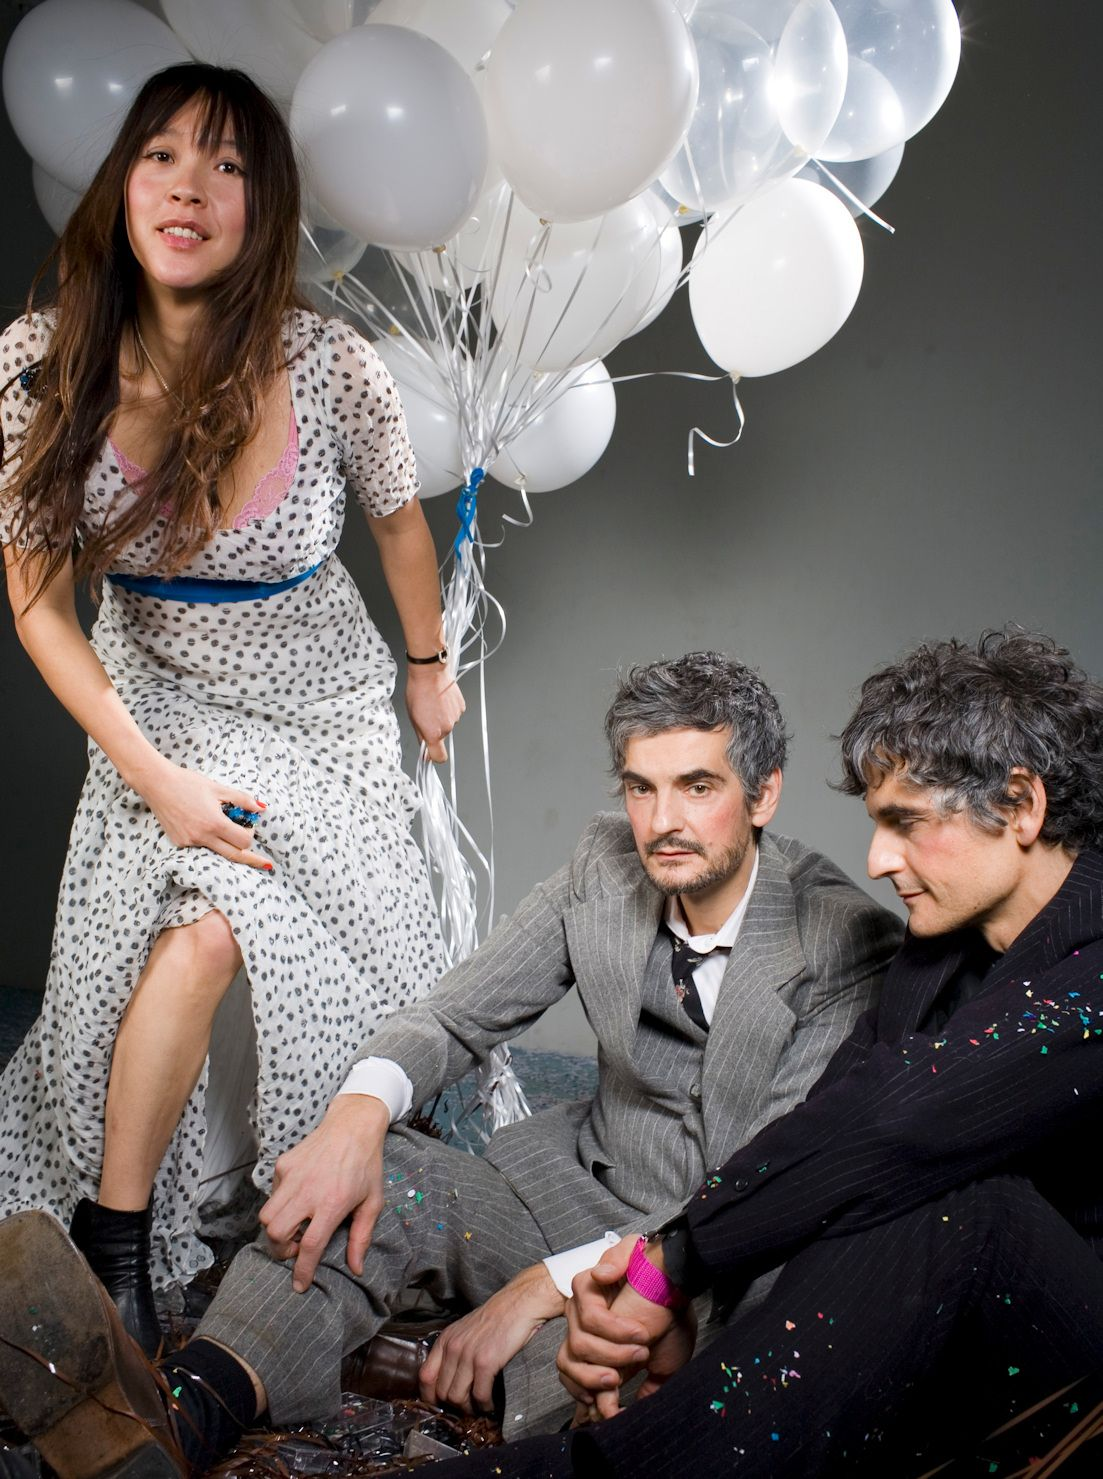 KIMBERLY: Anticipation blonde redhead